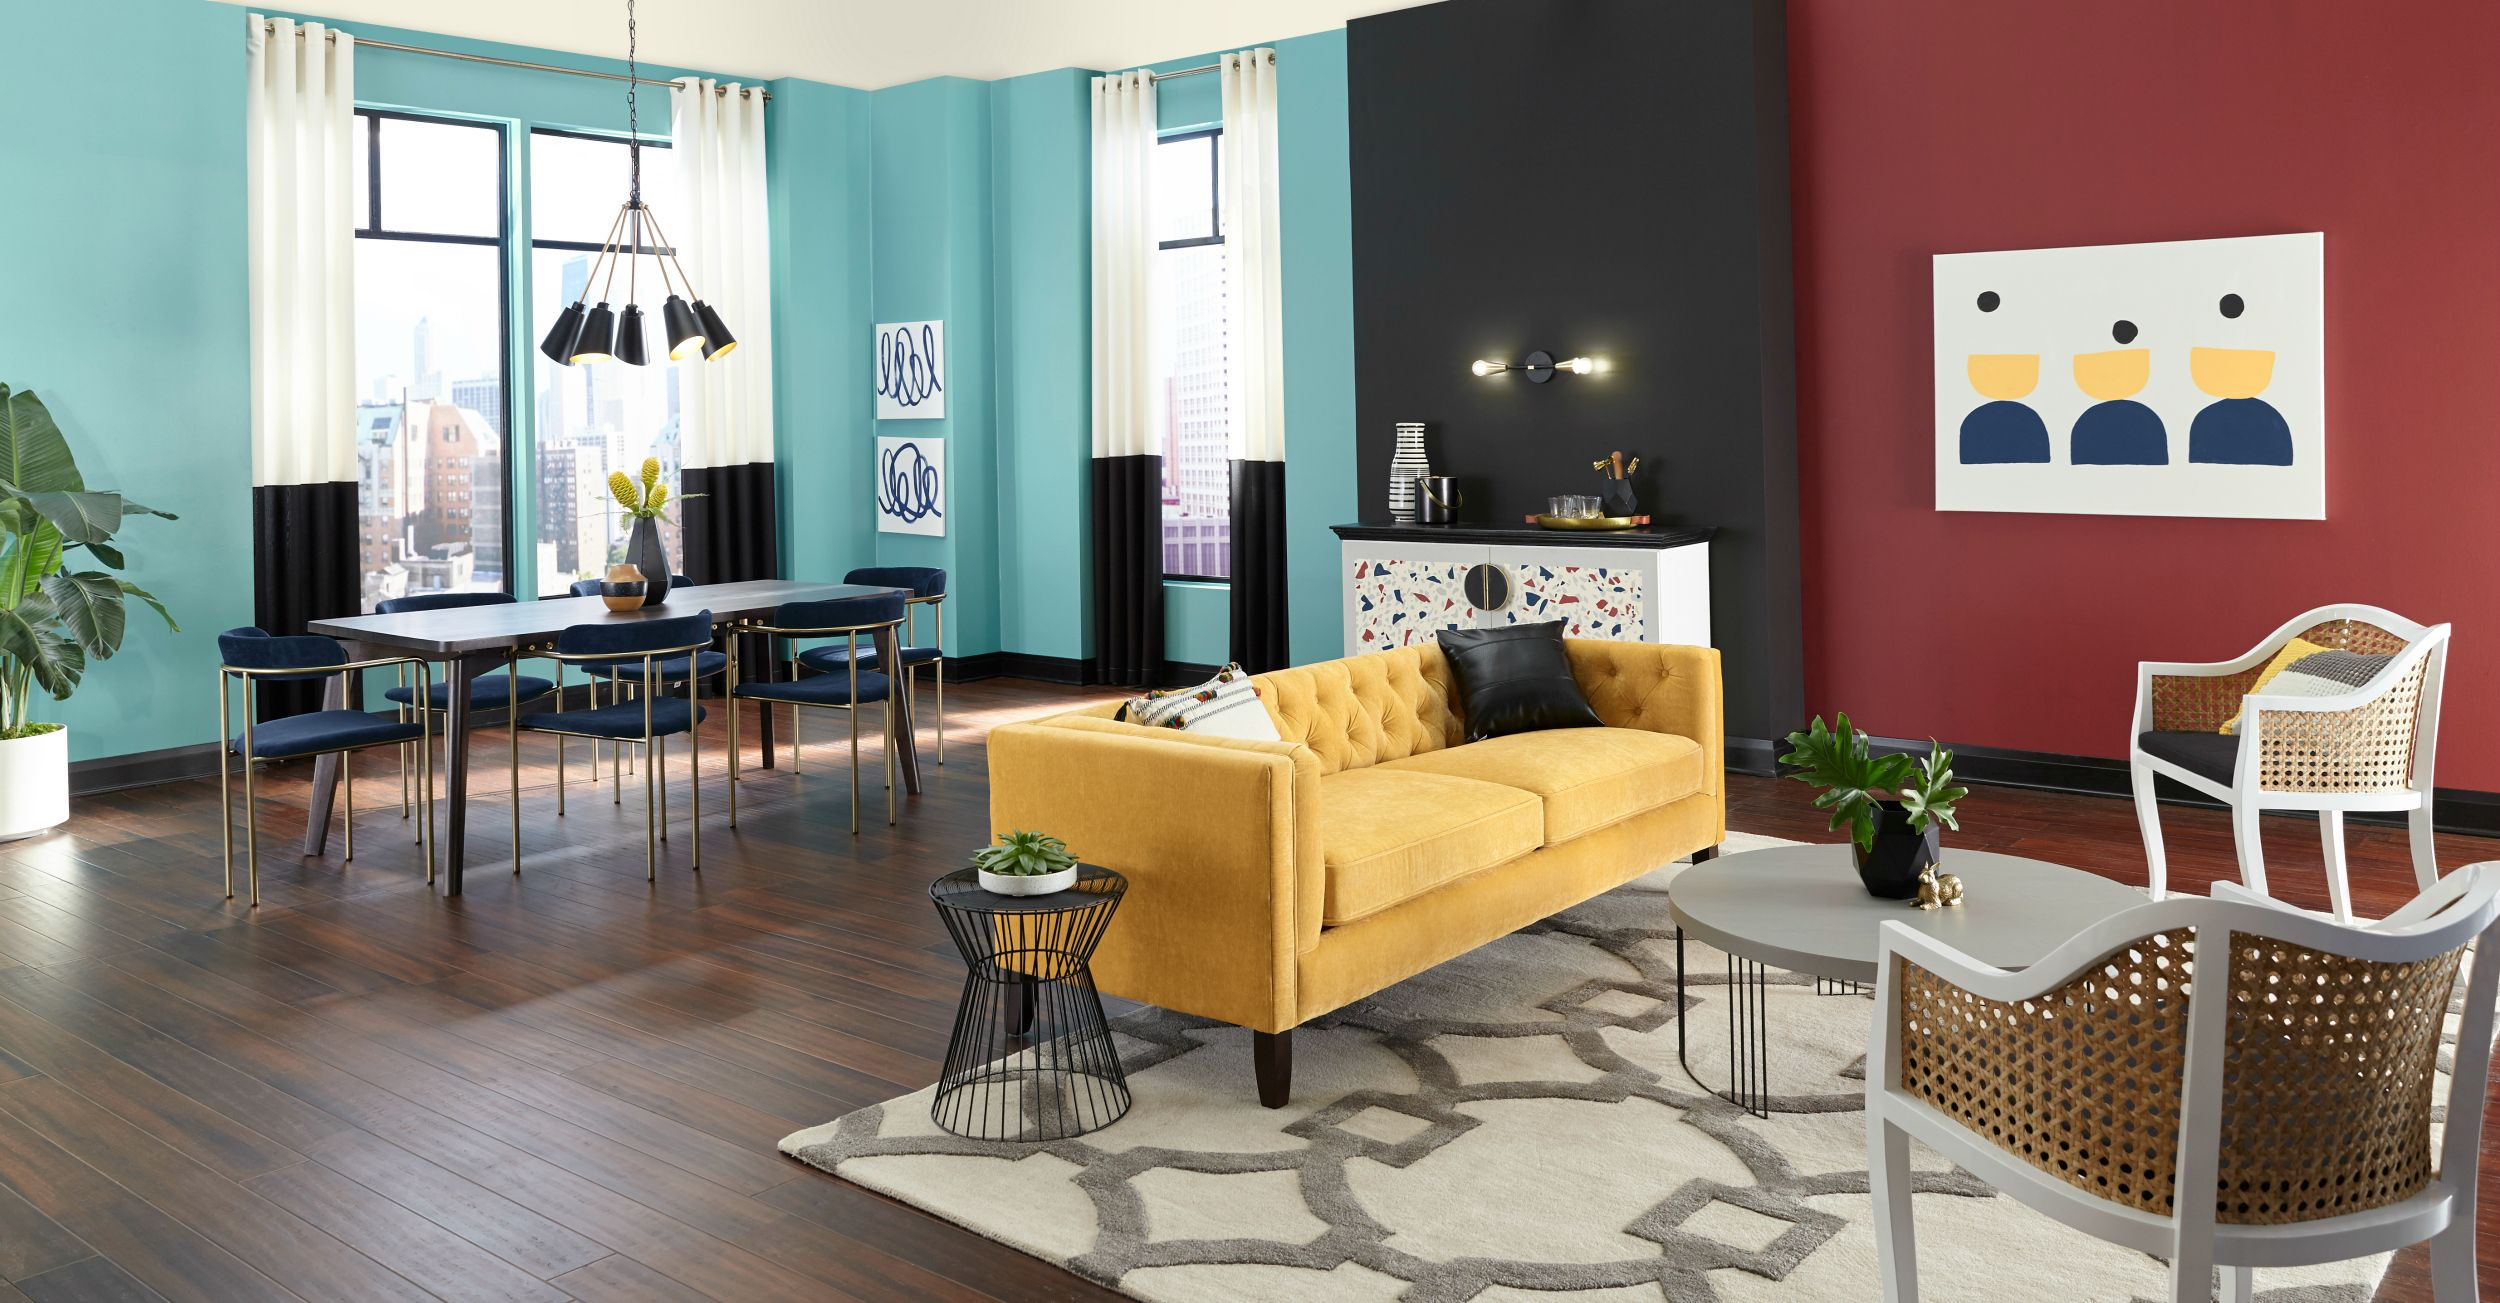 HGTV HOME By SherwinWilliams 2019 Color Of The Year Is